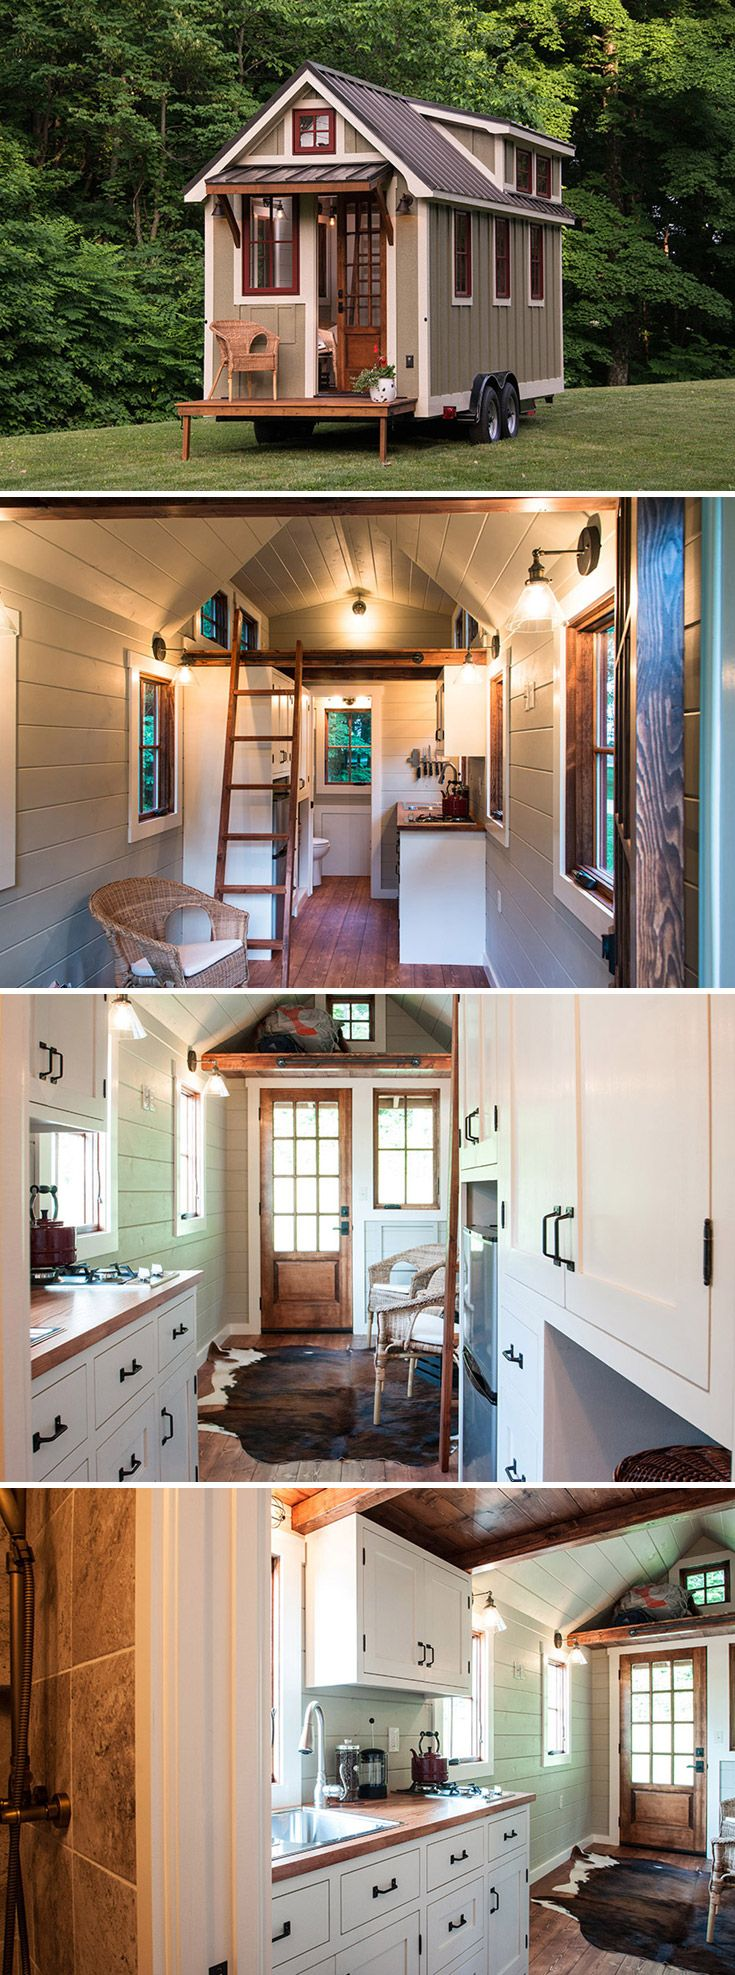 A 150 sq.ft. tiny house on wheels with upper cabinets and a large